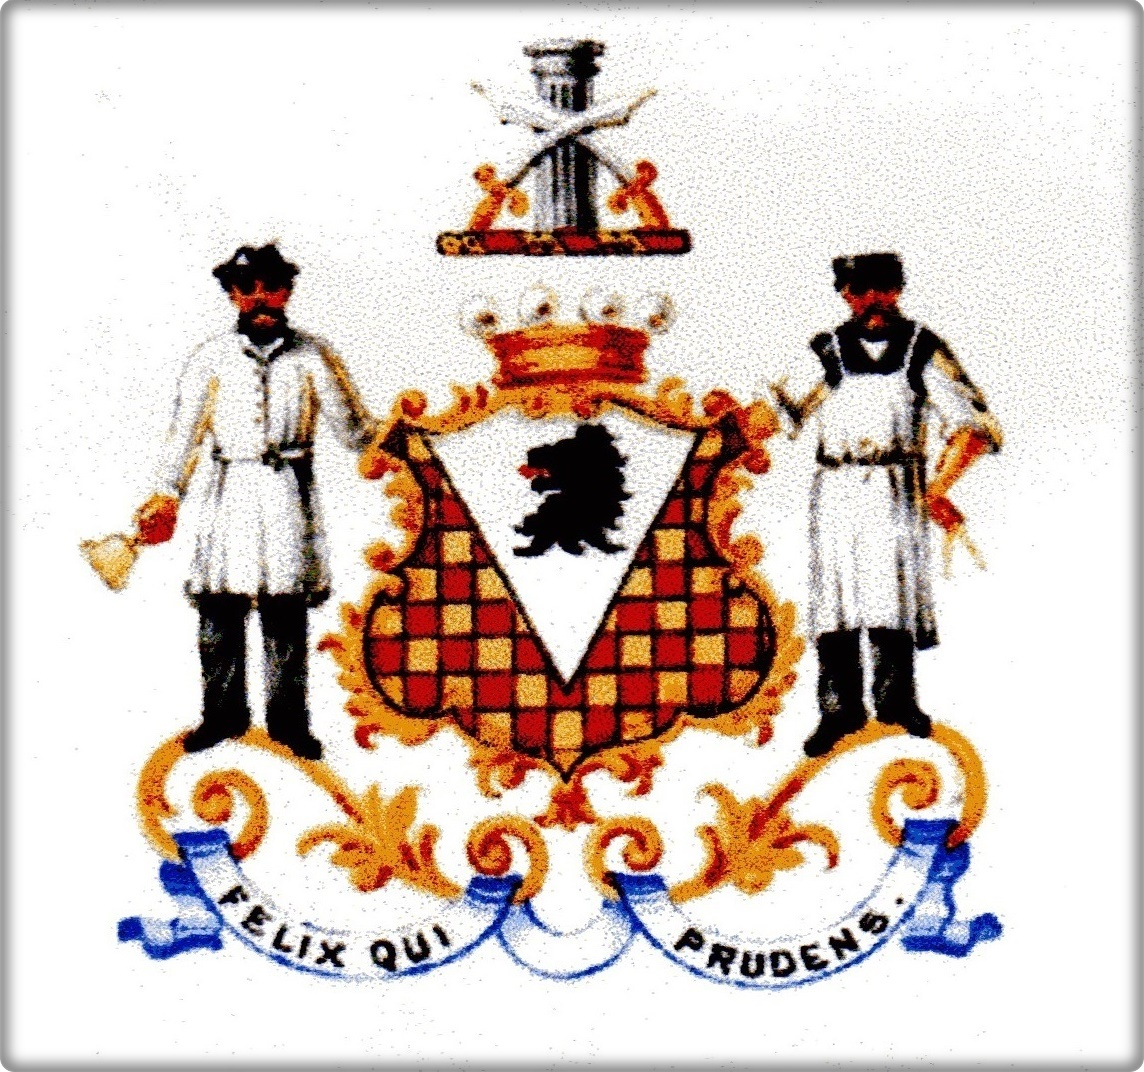 """The supporters of George's coat of arms echoed the family building business: """"Supporters: Dexter a Stonemason proper habited in Brown coat, a hat, apron argent in right hand a mallet sable; Sinister a Carpenter proper habited in Brown vest, apron argent in his left hand a pair of compasses or."""""""